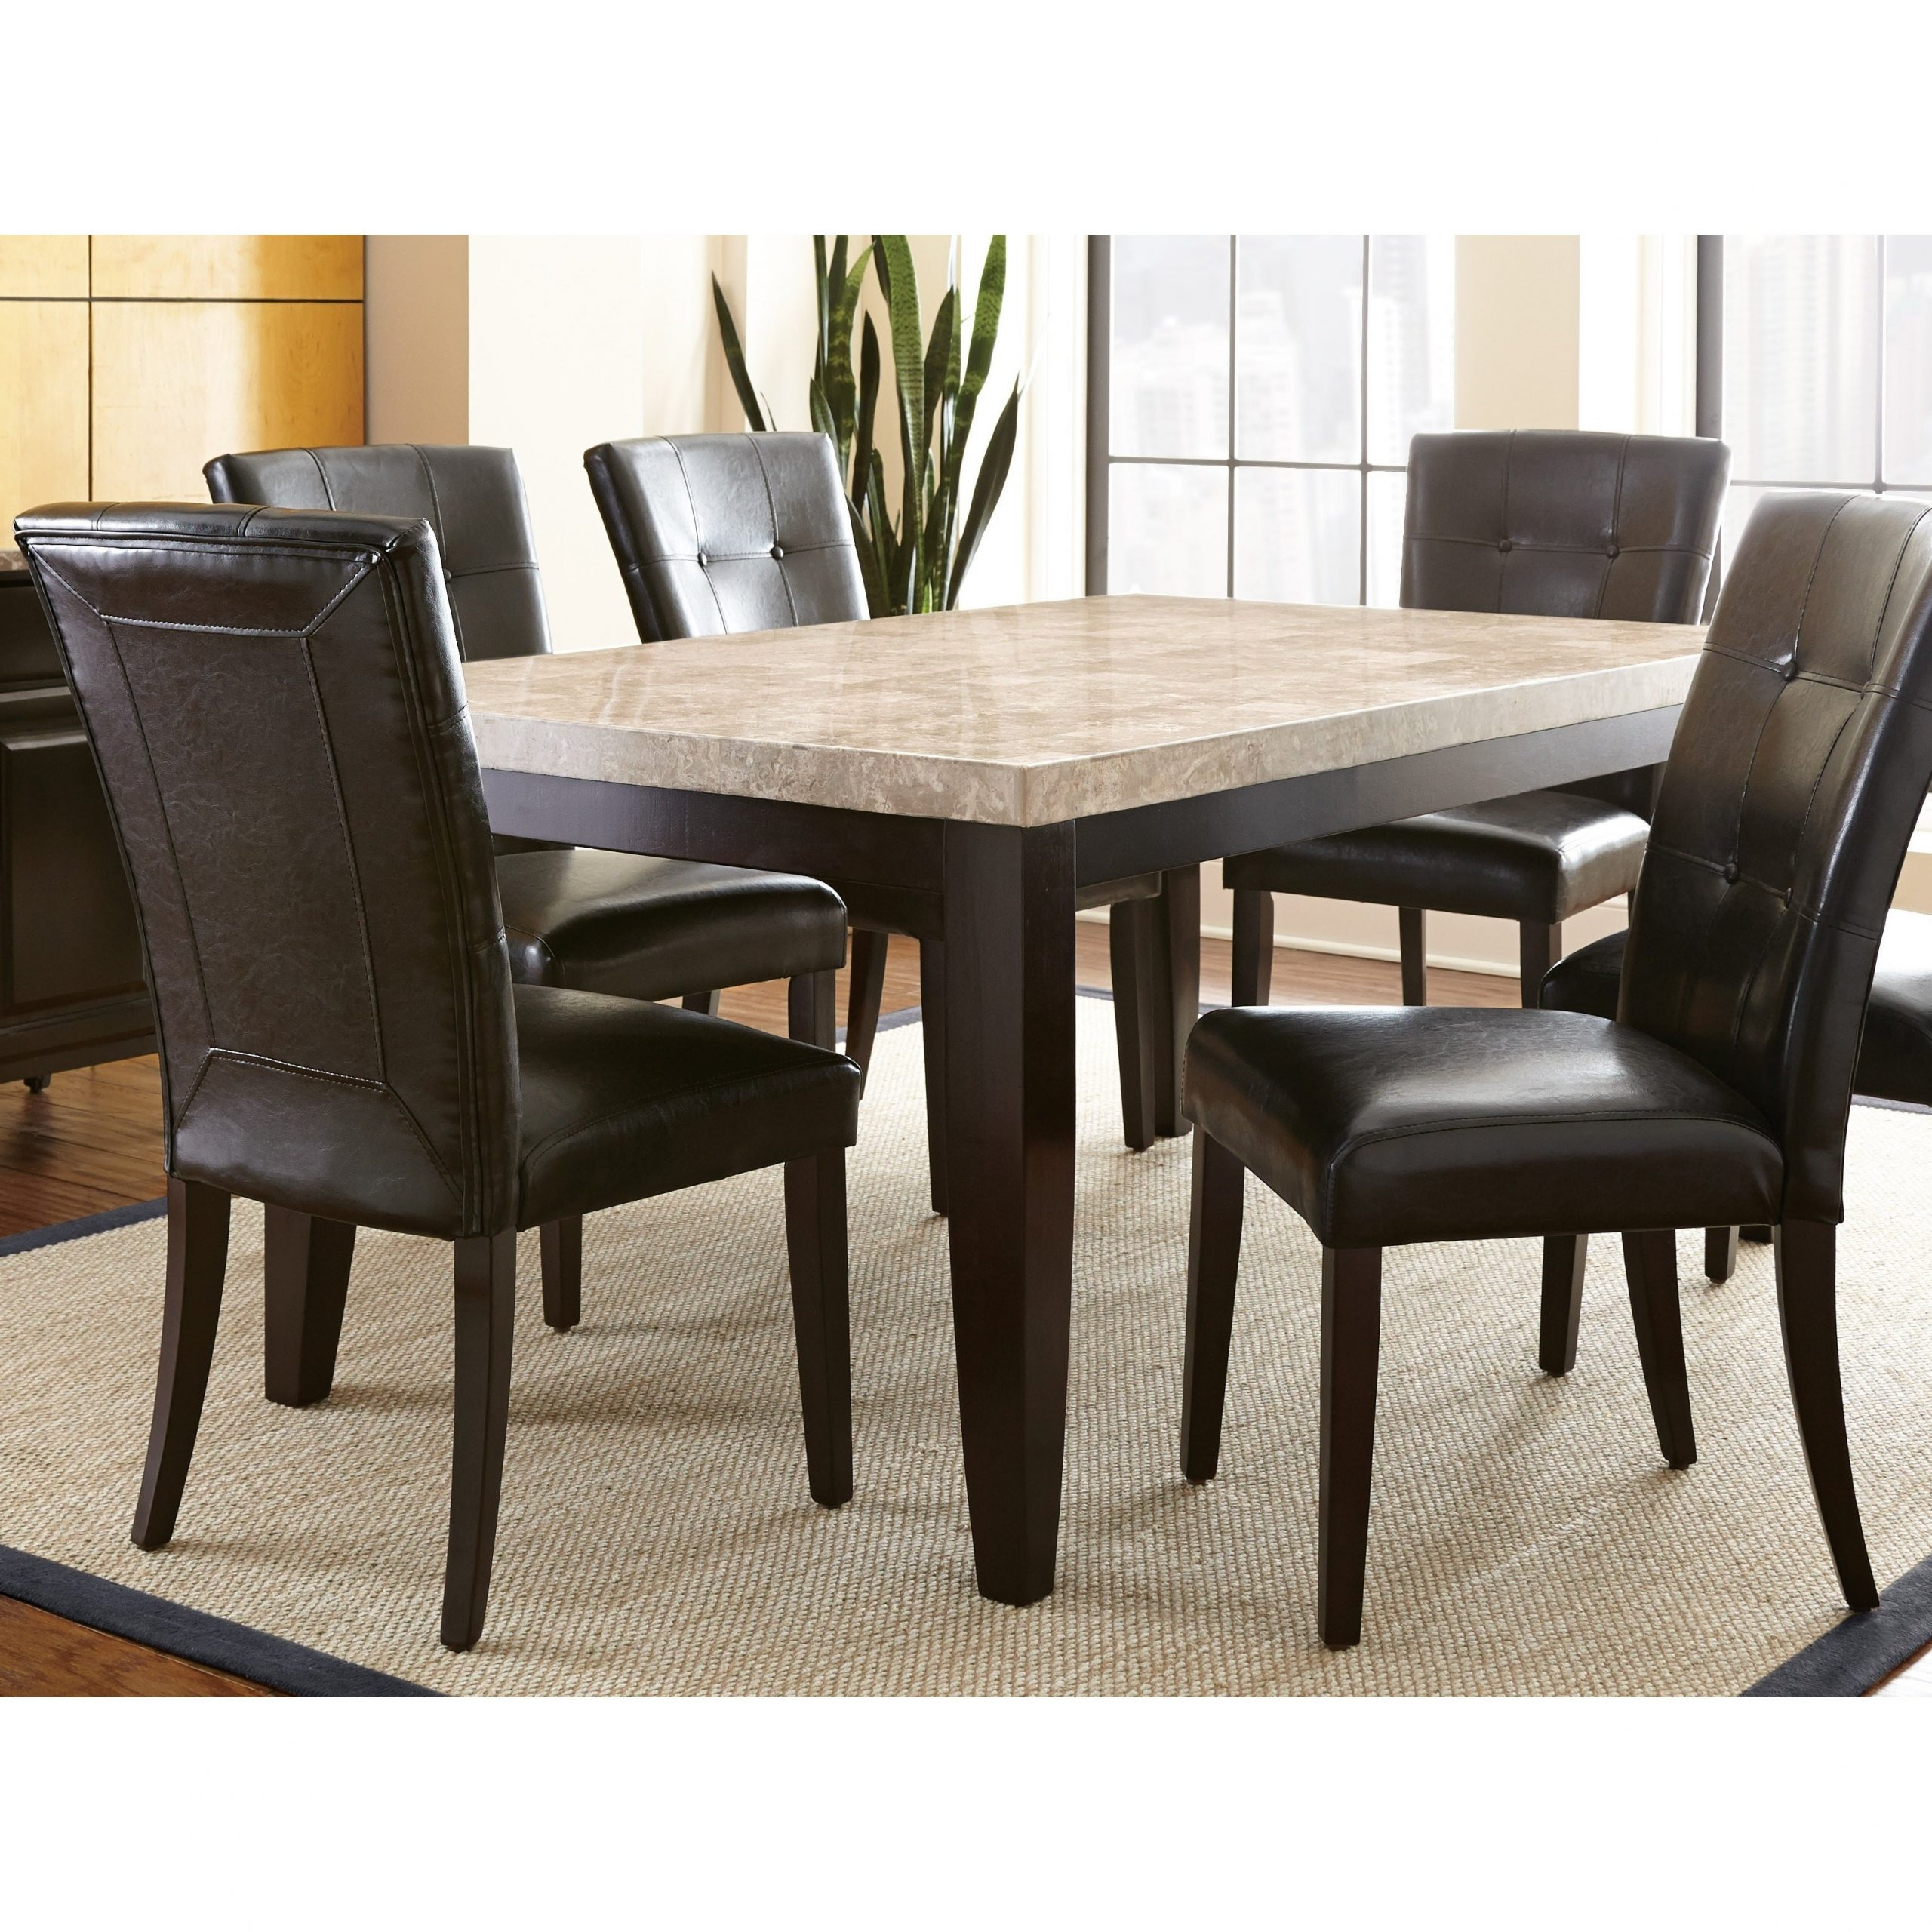 Greyson Living Malone 70 Inch Marble Top Dining Table – Espresso Regarding Well Known Wood Top Dining Tables (View 21 of 30)